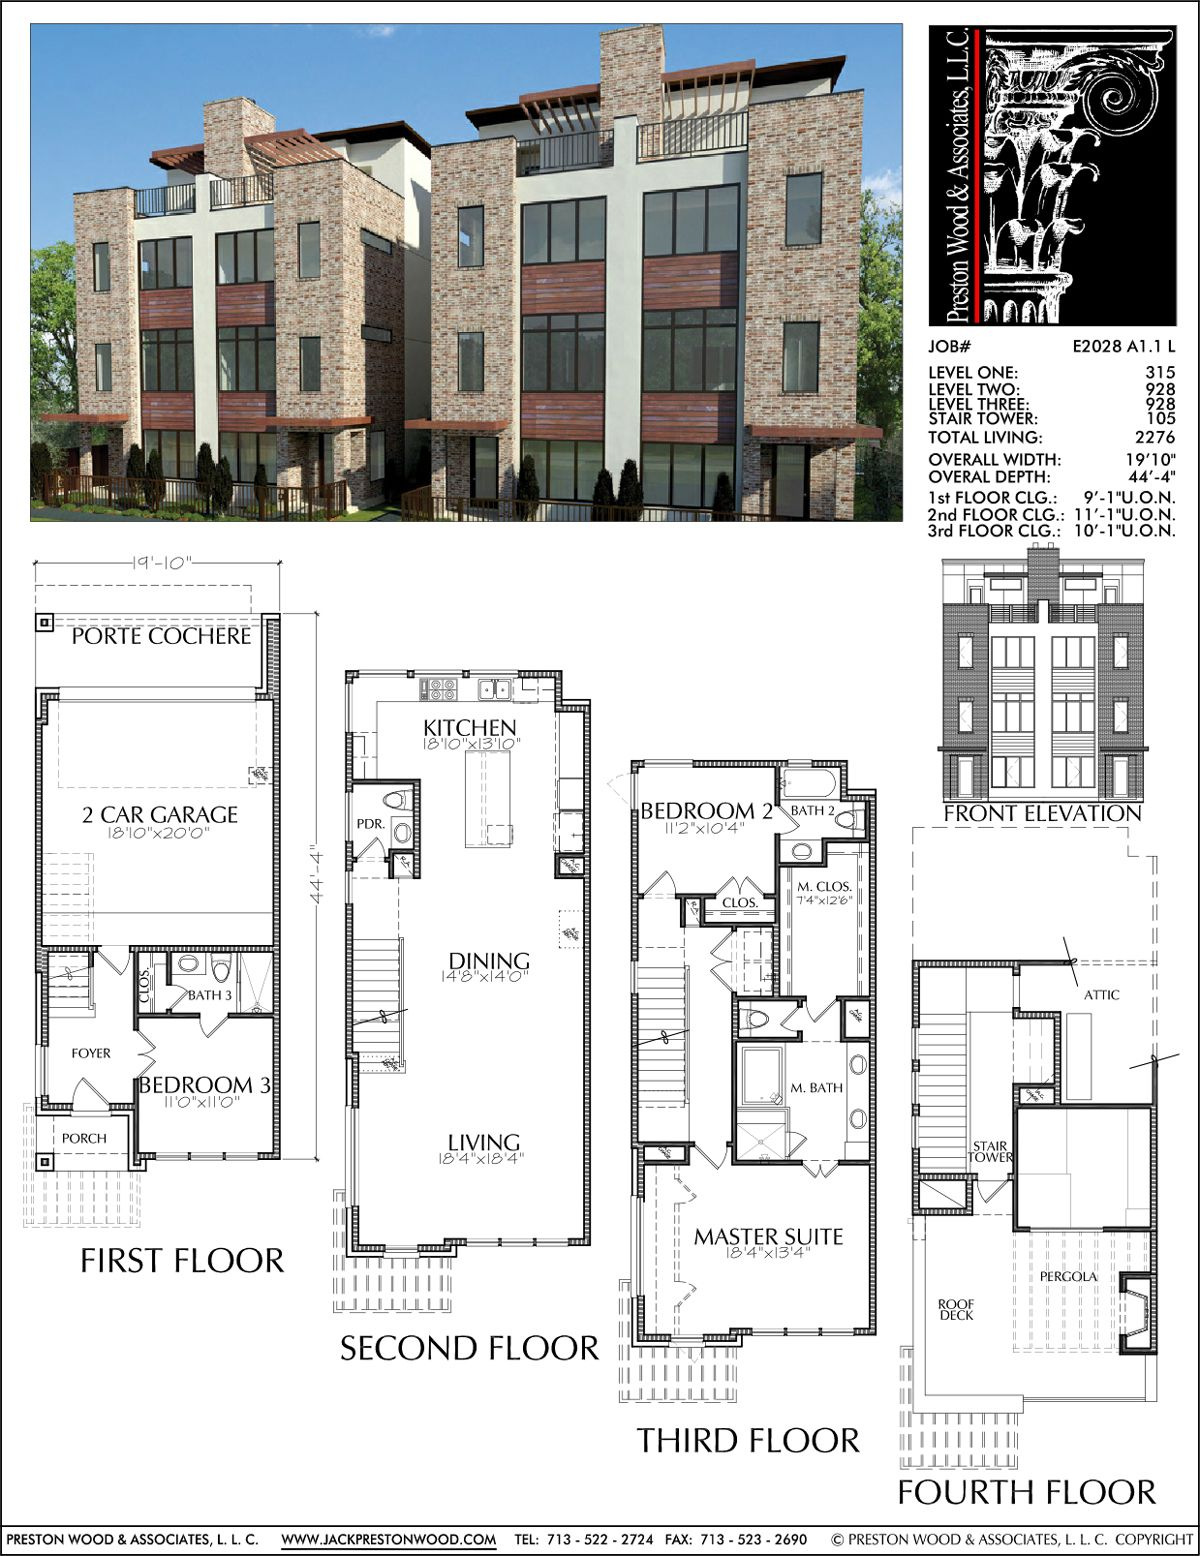 Duplex townhome plan e2028 a1 1 small modern house for Small townhouse plans